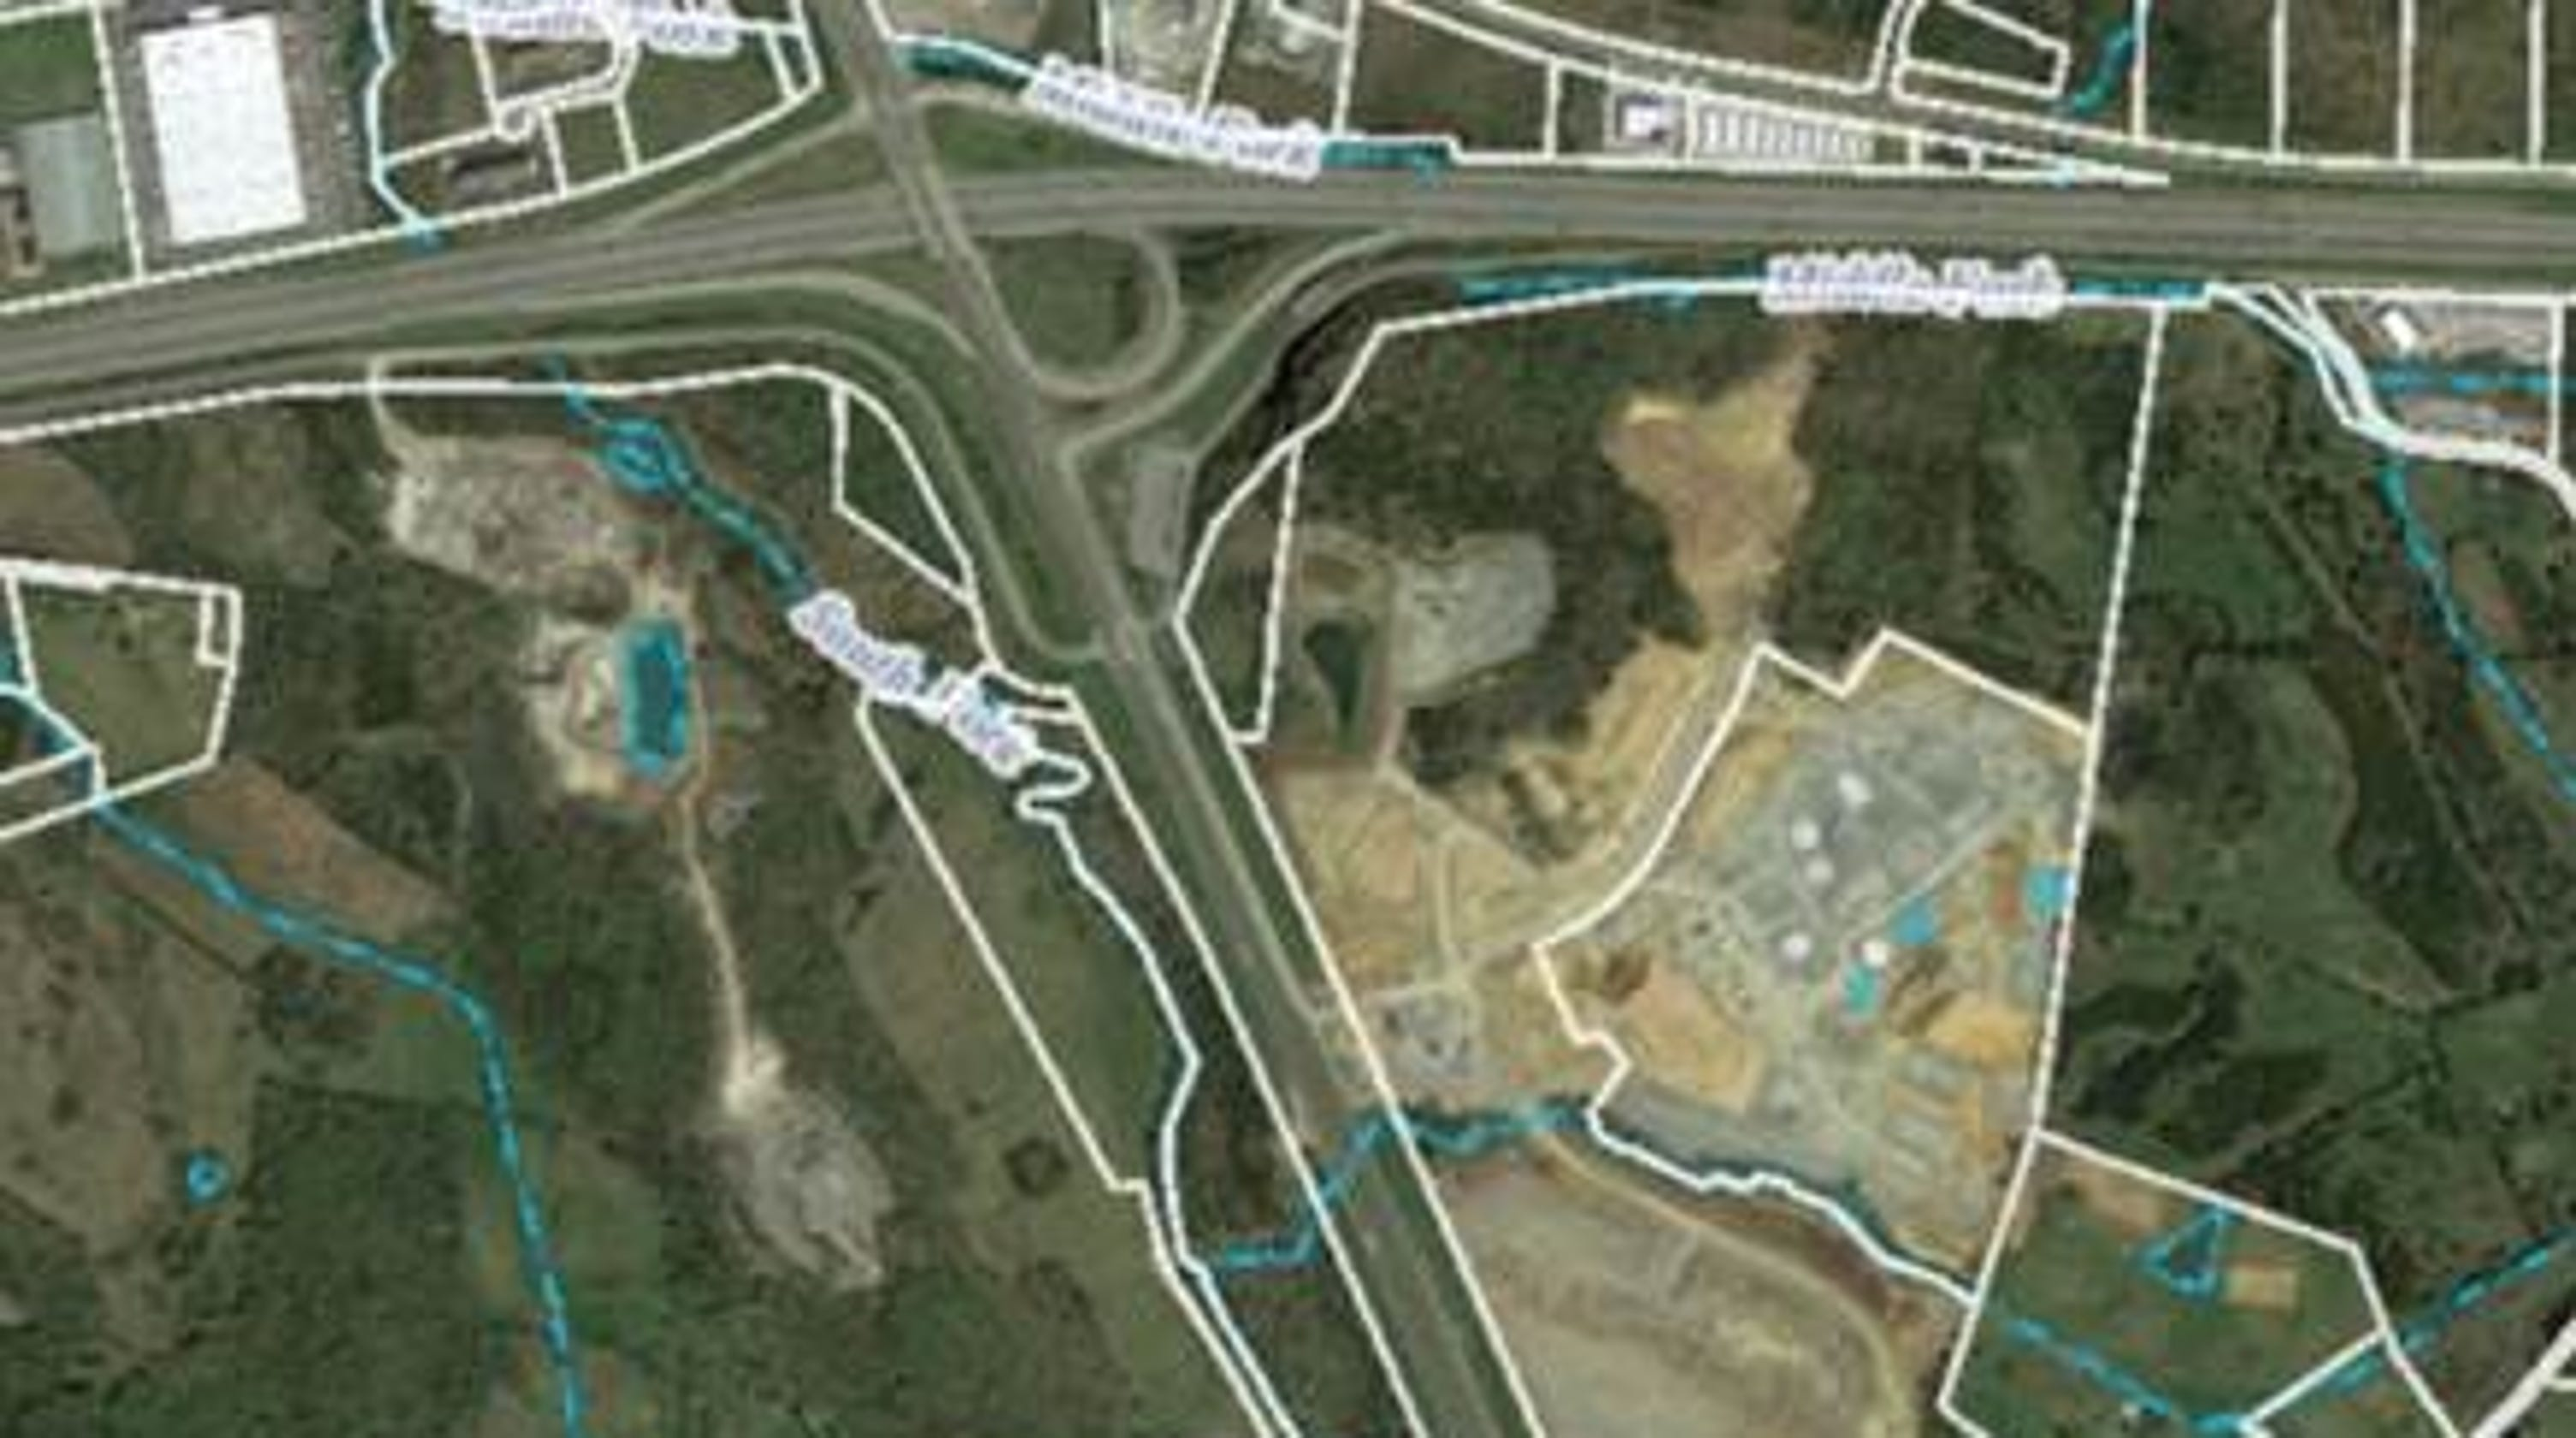 Plans for 215 townhomes submitted in Lebanon near I-40 and